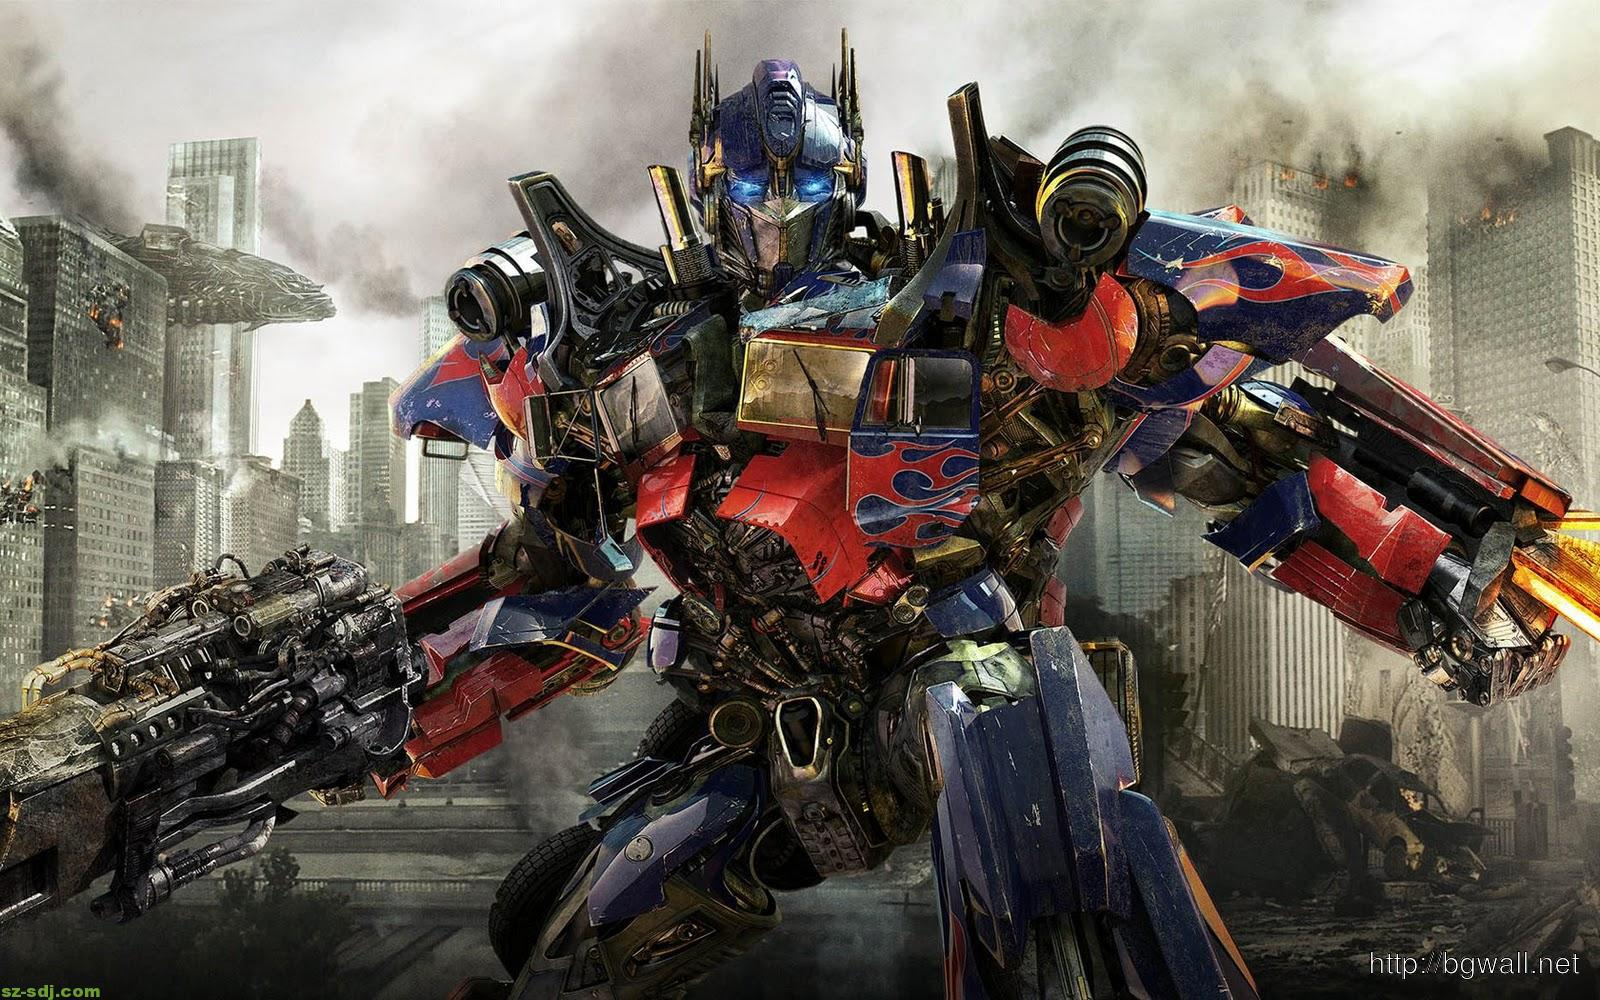 2014 Transformer 4 Wallpaper For Desktop